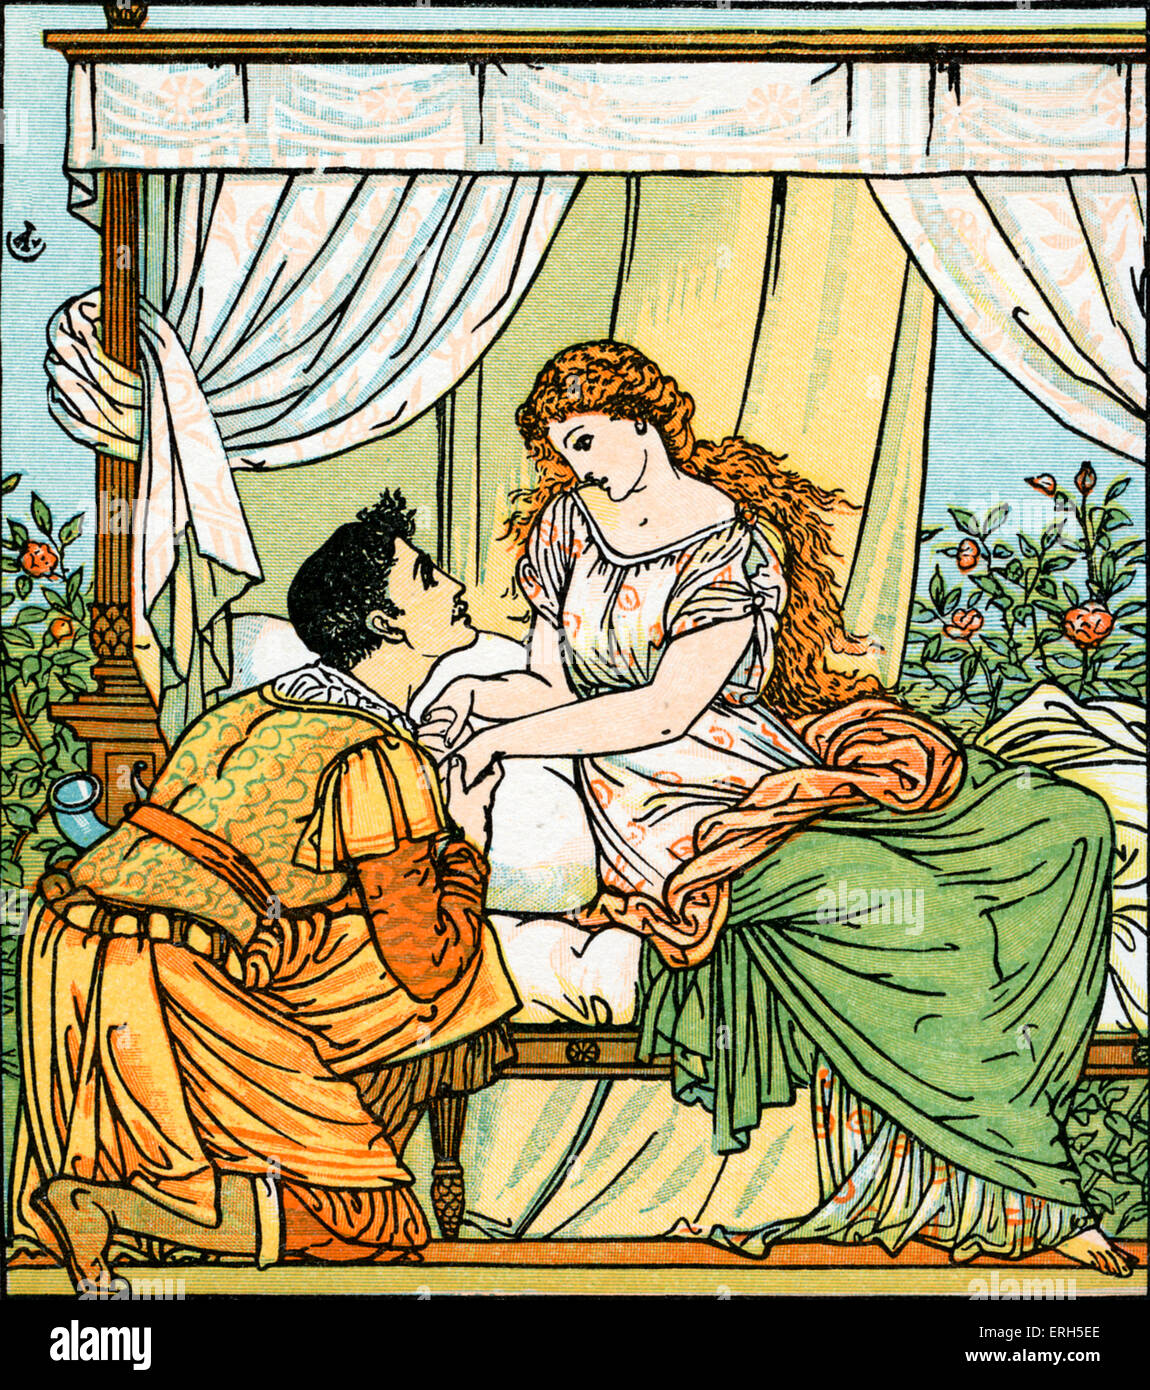 Sleeping Beauty written and illustrated by Walter Crane and published in 1914. The scene depicts the Prince waking - Stock Image